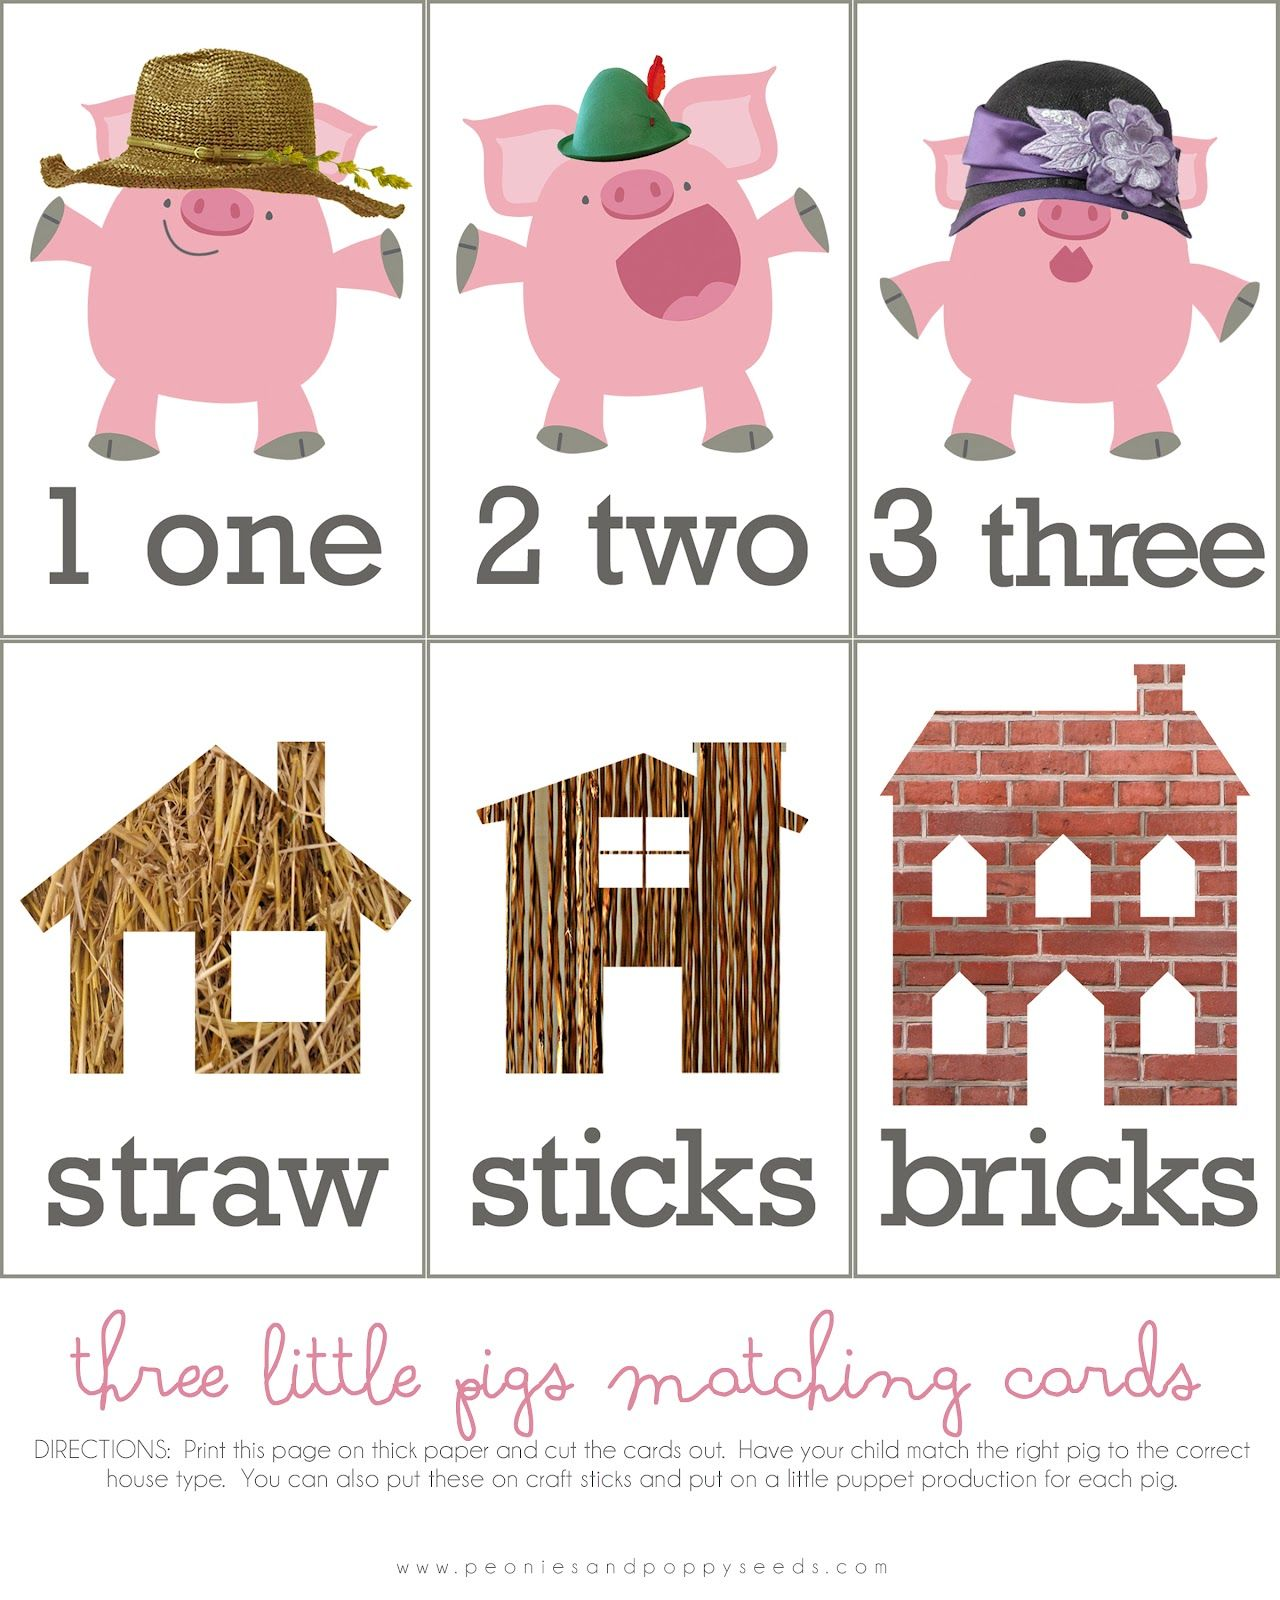 Coloring pages 3 little pigs - Letter Activities Retelling Activities Character Activities Letter F Three Little Pigs Folktale Letter Recognition Nursery Rhymes Kid Crafts